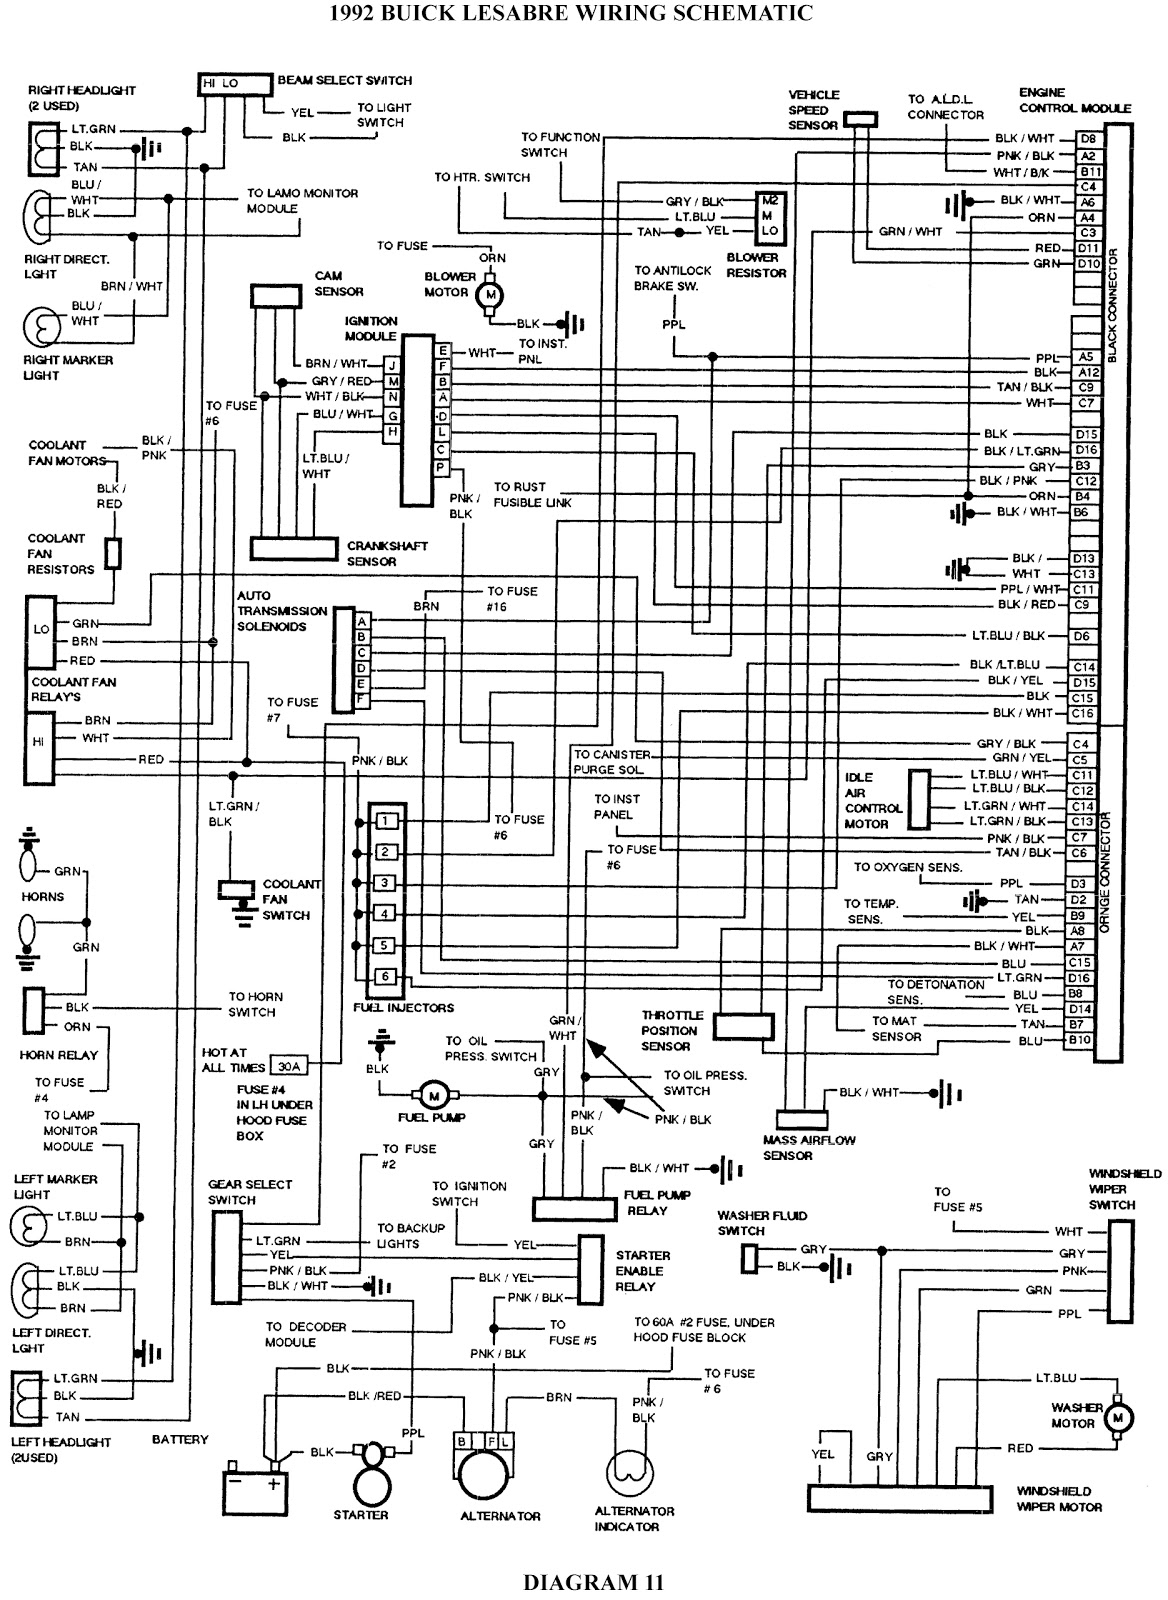 95 pontiac bonneville wiring diagram wiring diagram